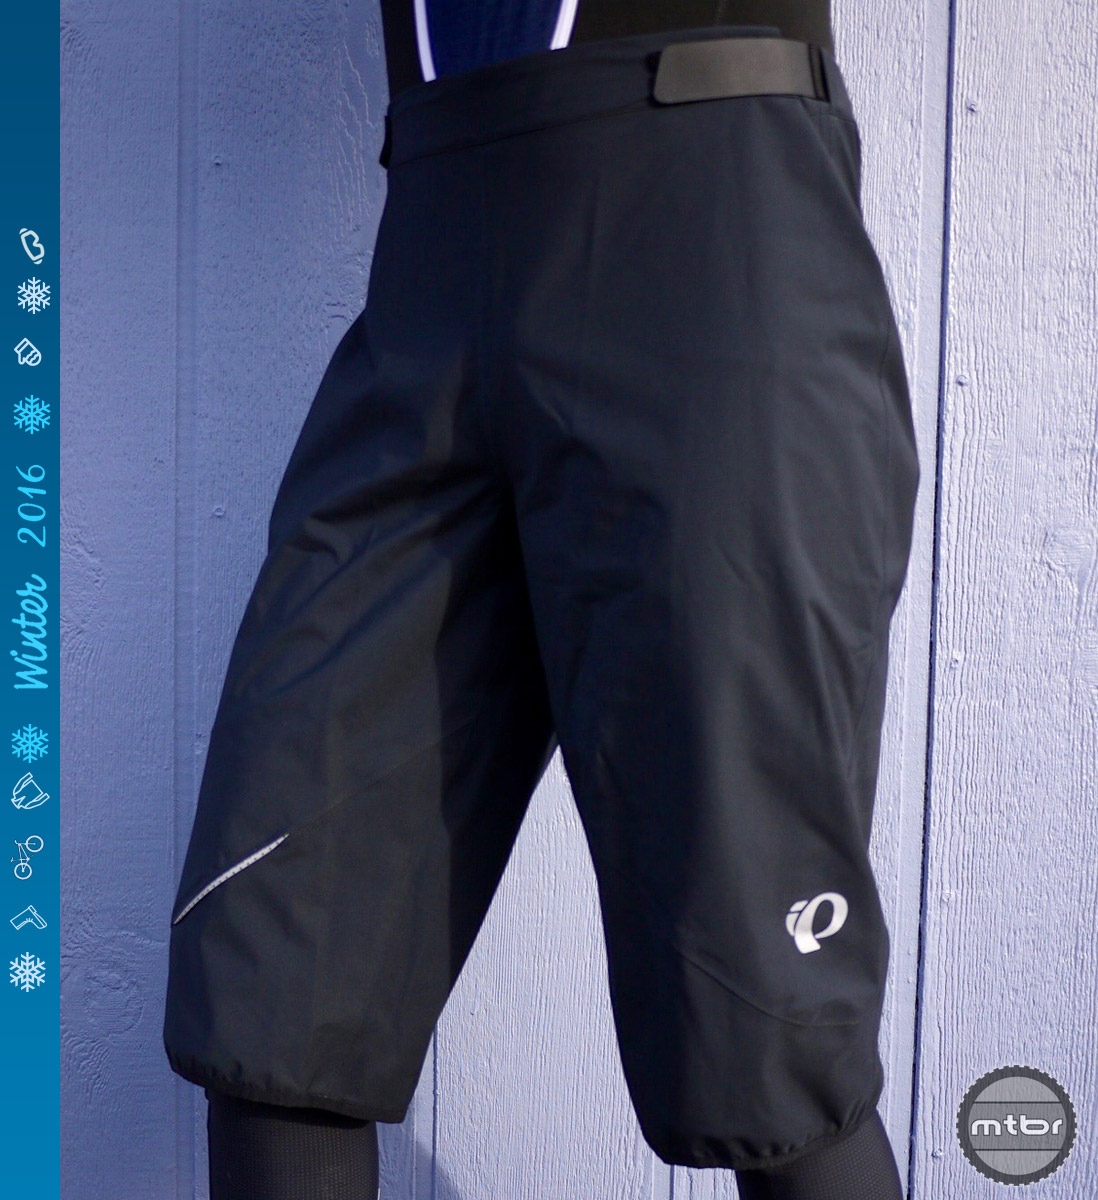 The nod goes to Pearl Izumi, as we liked the small refinements that make life with their WxB shorts a bit nicer.